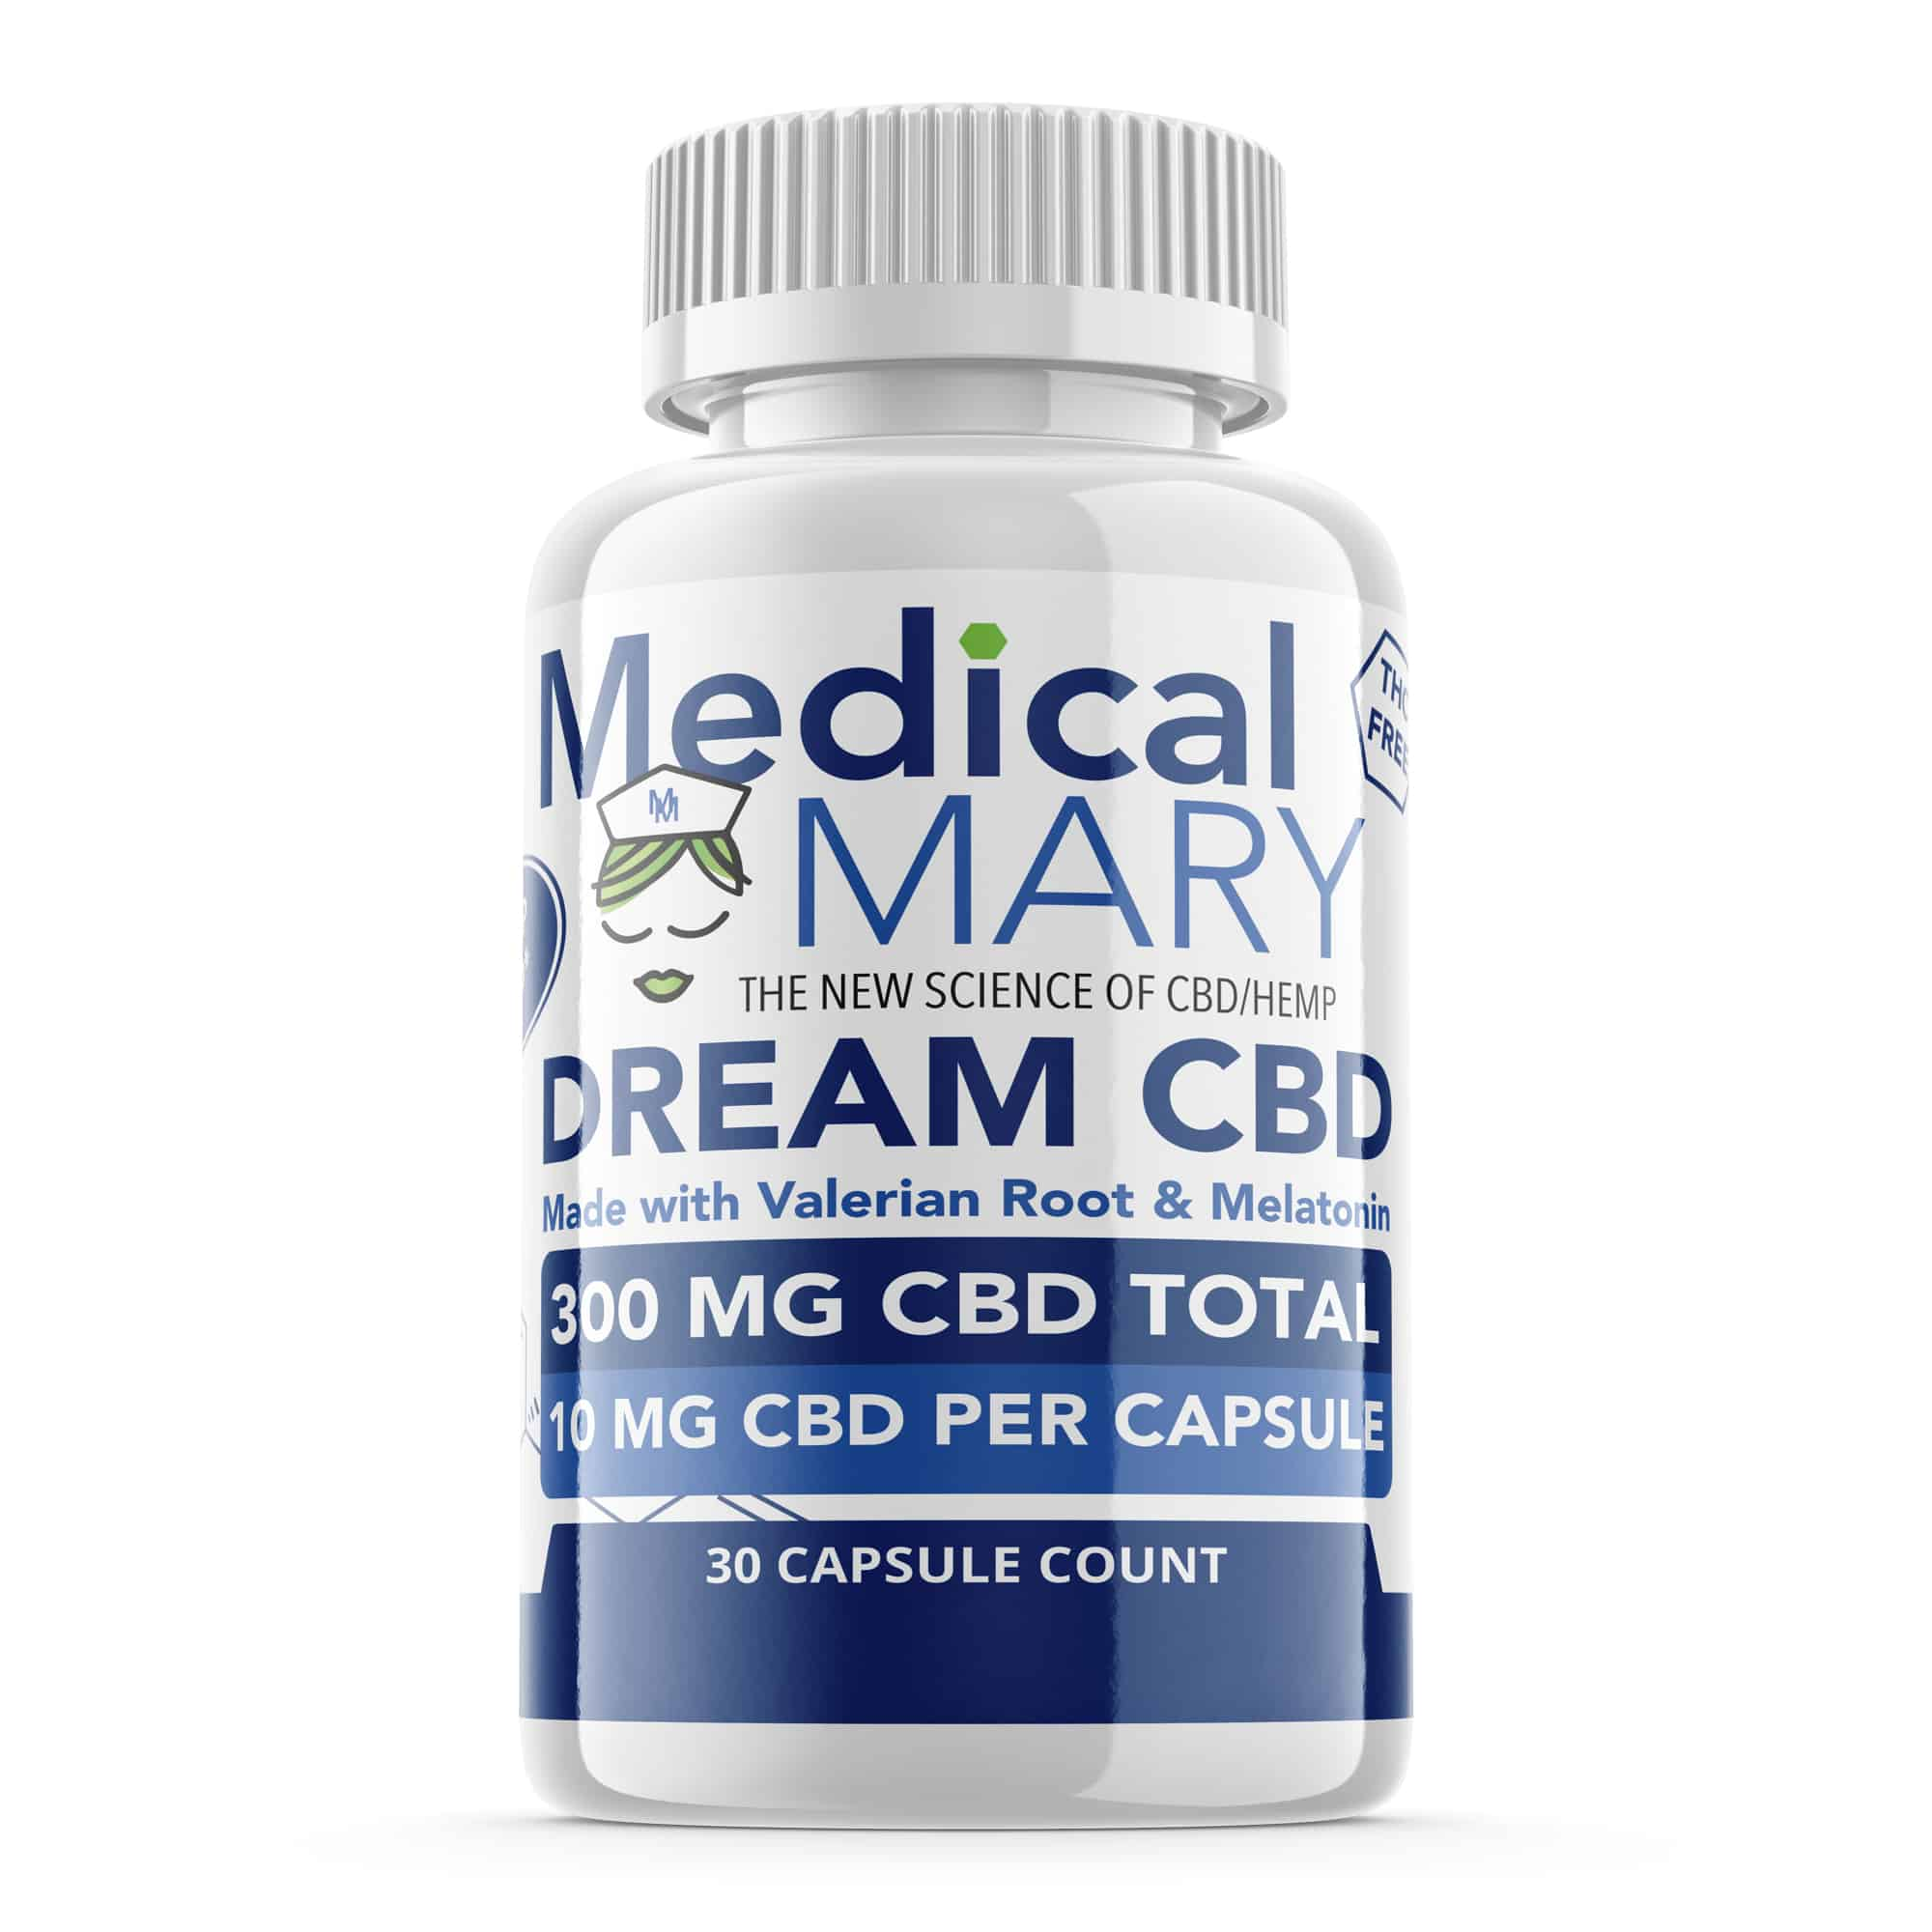 Best Sleep support CBD from Medical Mary